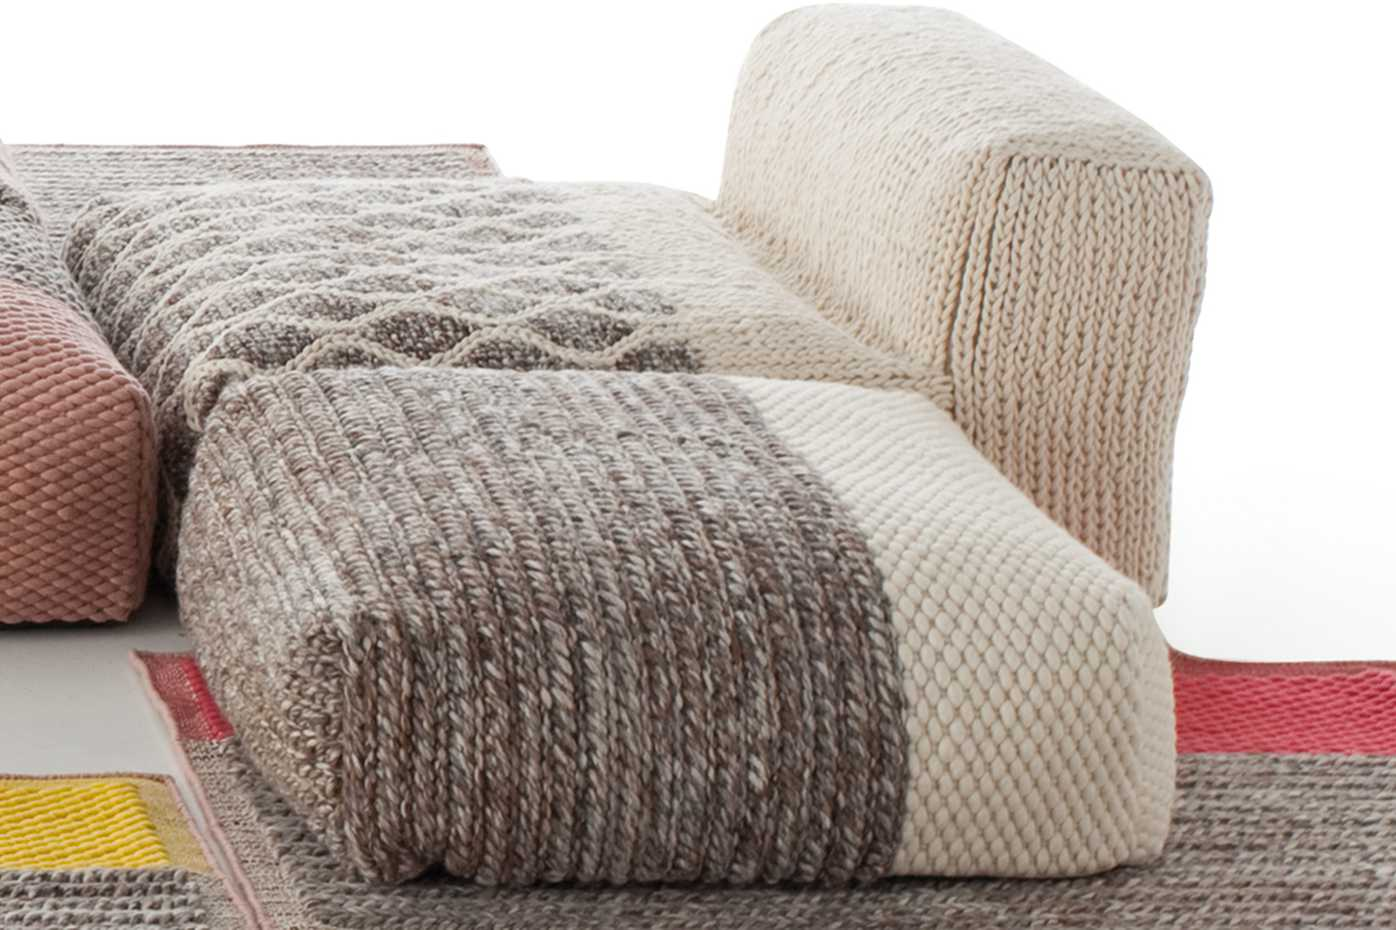 Mangas Space Poufs by Gan Rugs product image 2